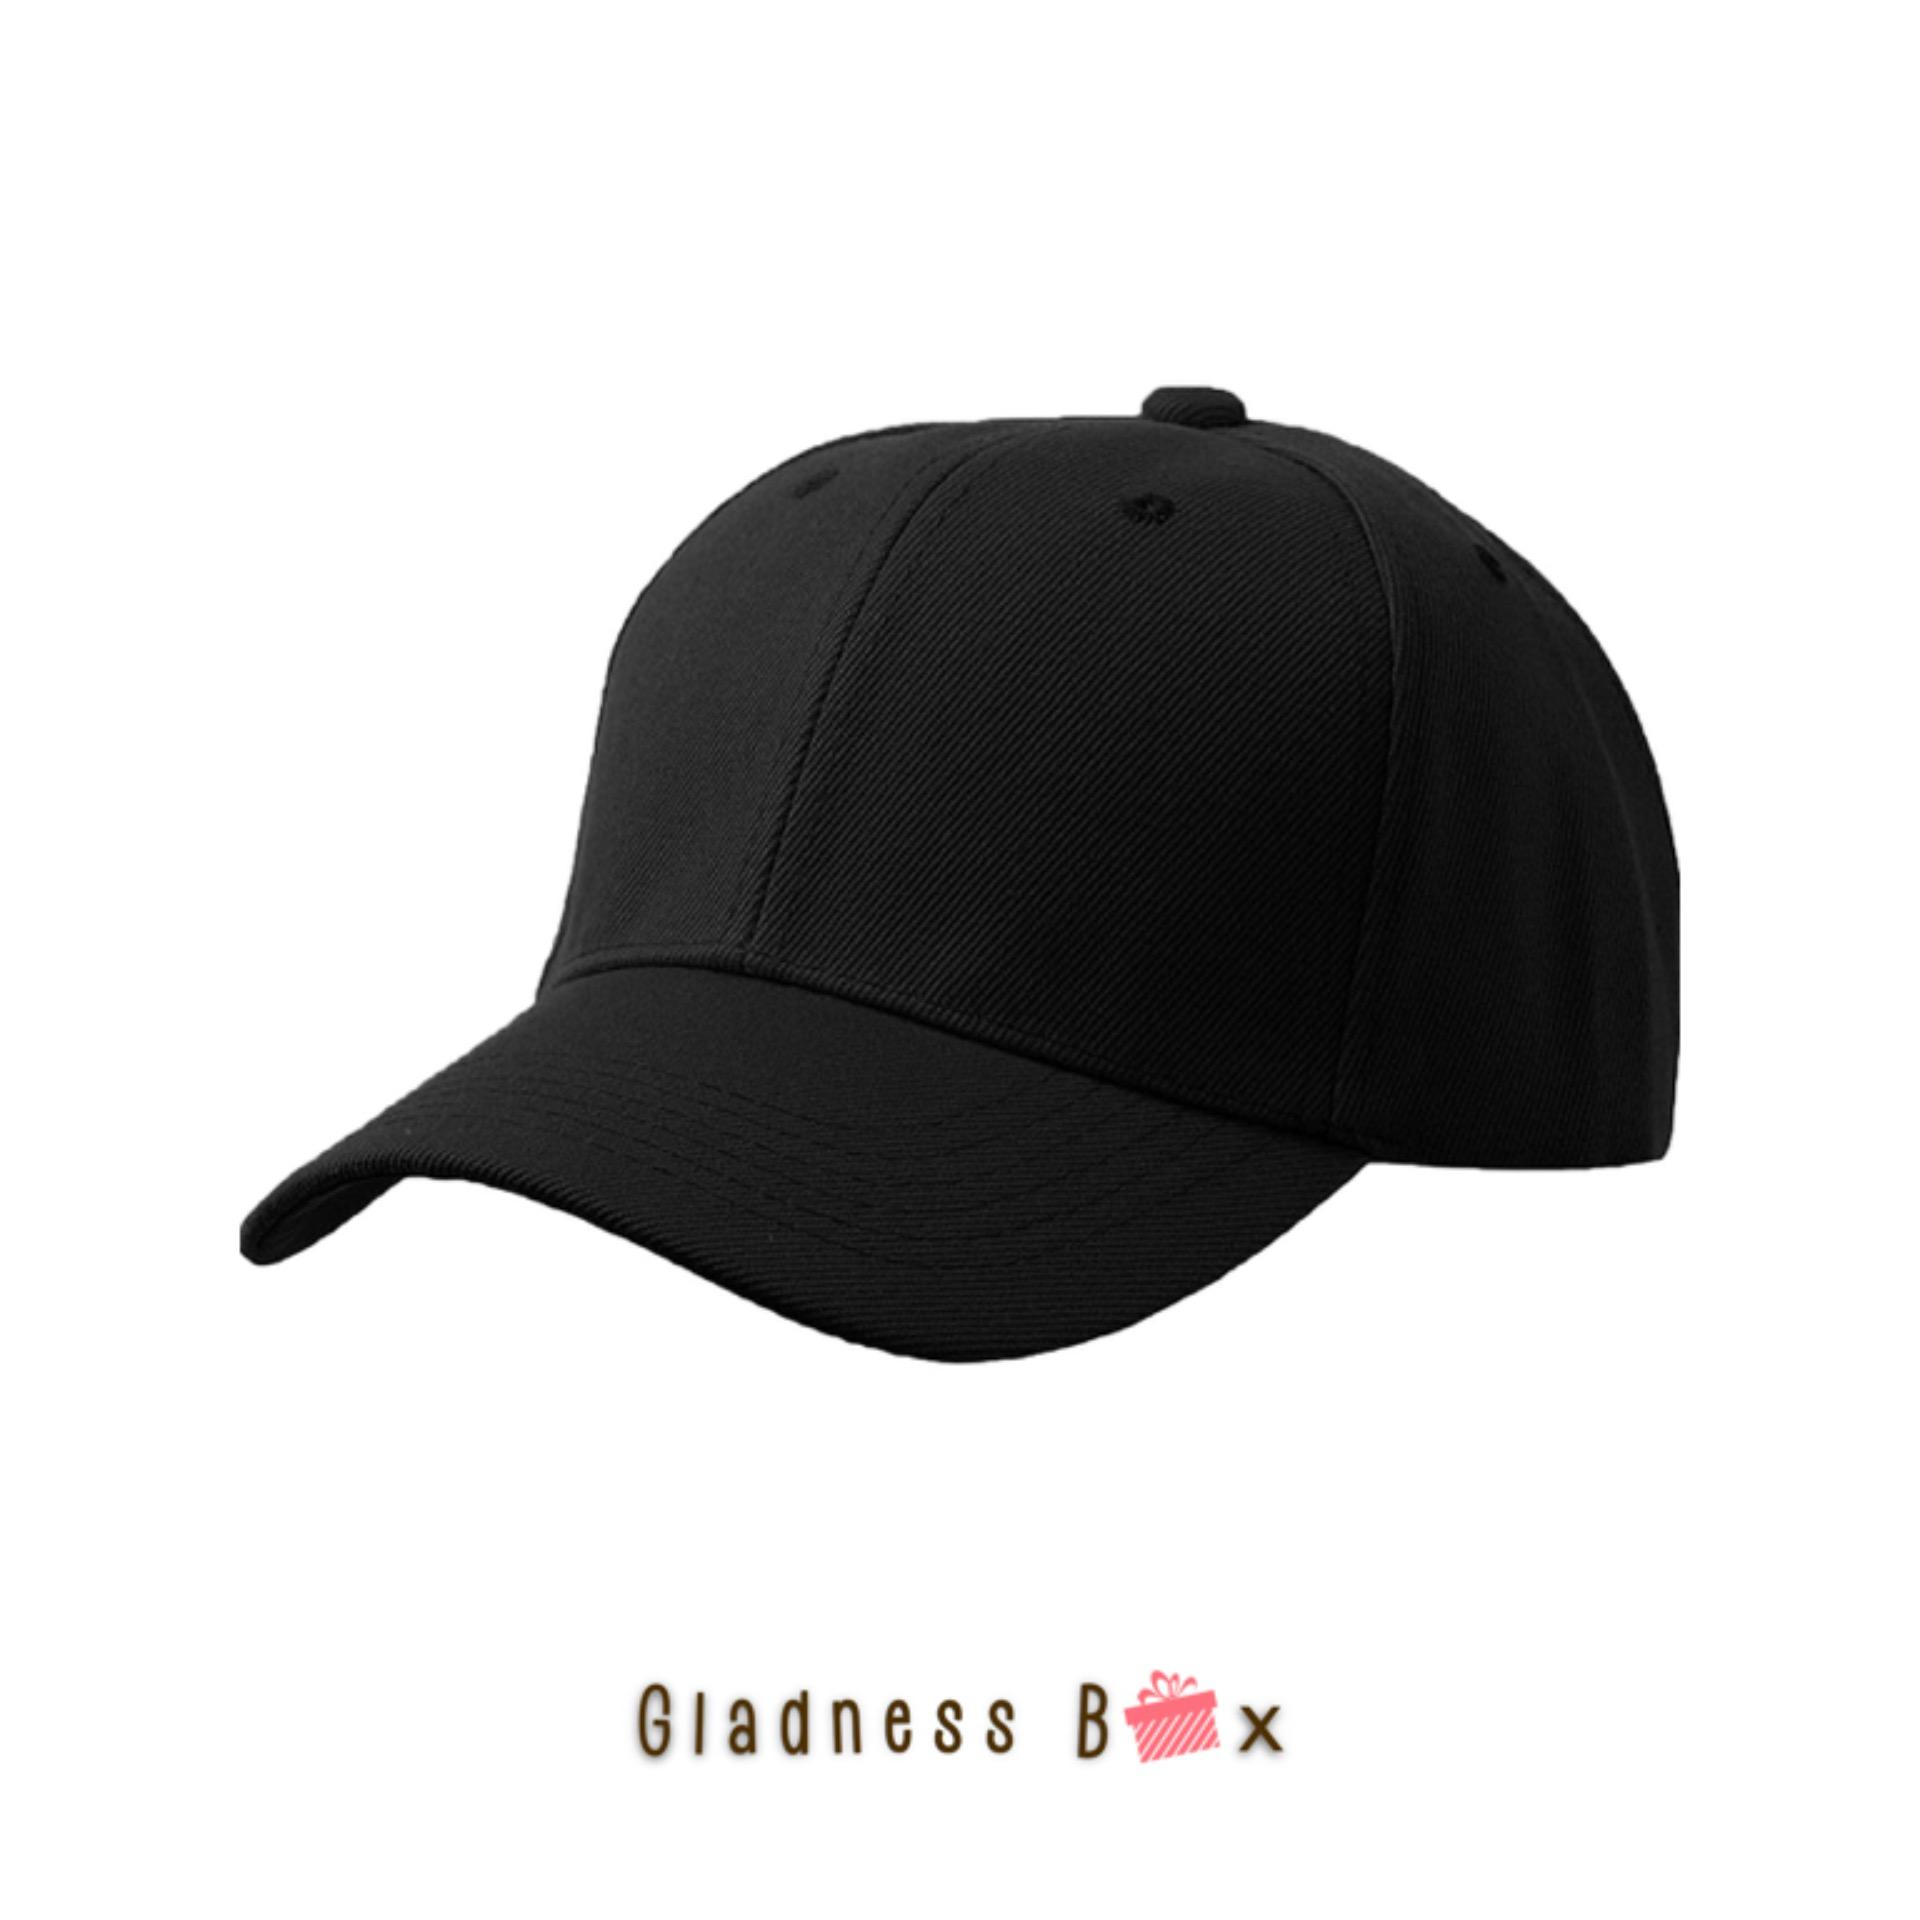 Gladness Box High Quality Plain Baseball Cap for Men Women Unisex 1dd749041f6